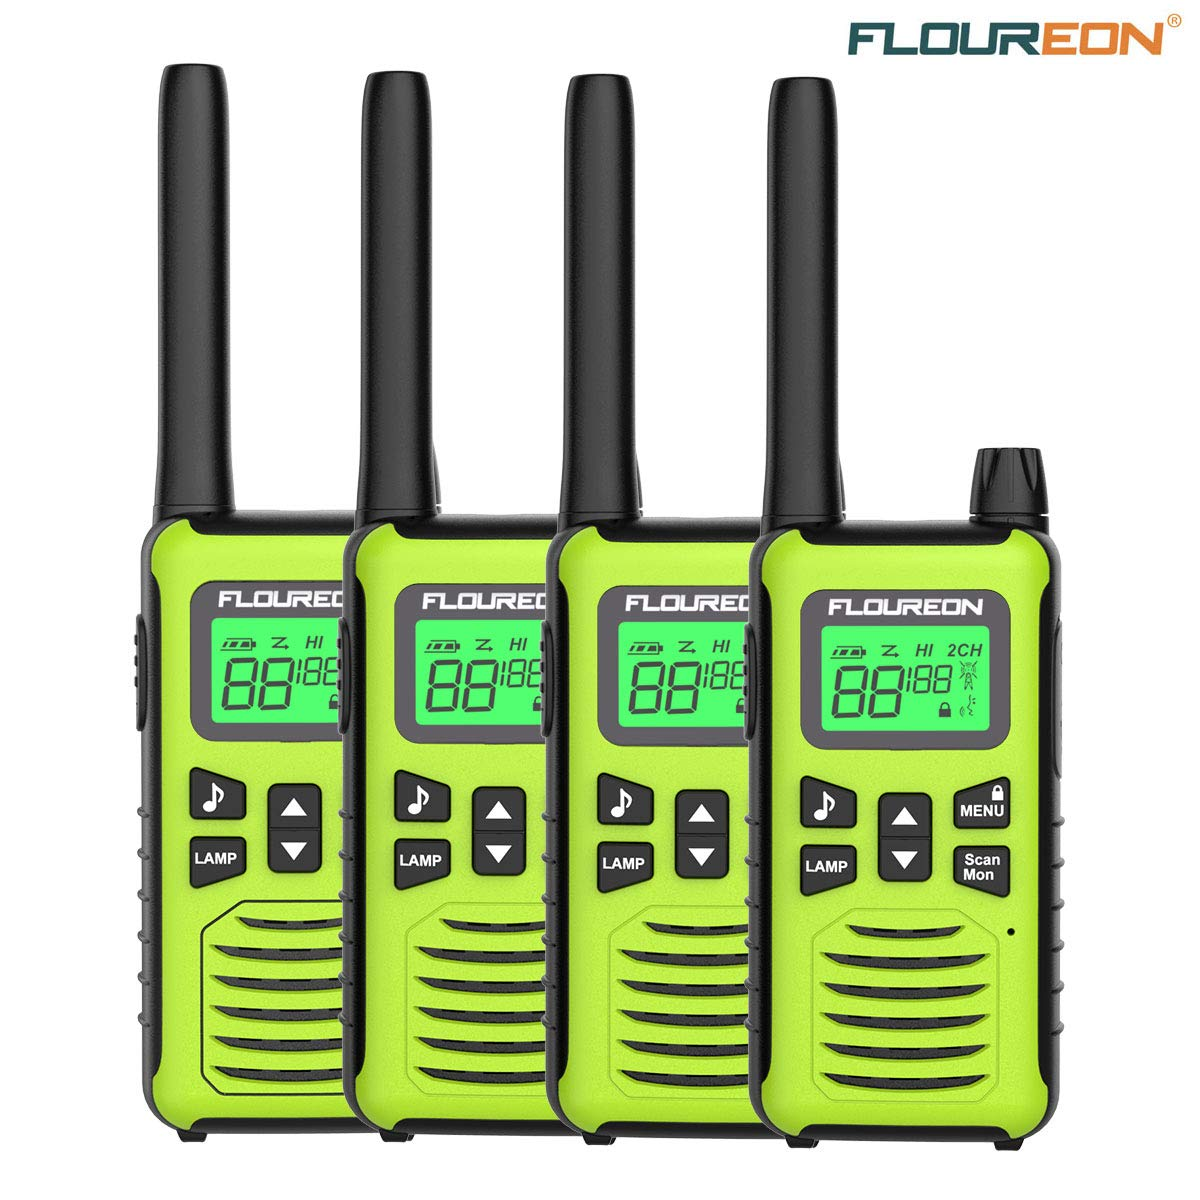 FLOUREON 4 Packs Walkie Talkies Two Way Radios 22 Channel 3000M (MAX 5000M Open Field) Long Range Handheld Talkies Talky (Yellow) by floureon (Image #1)